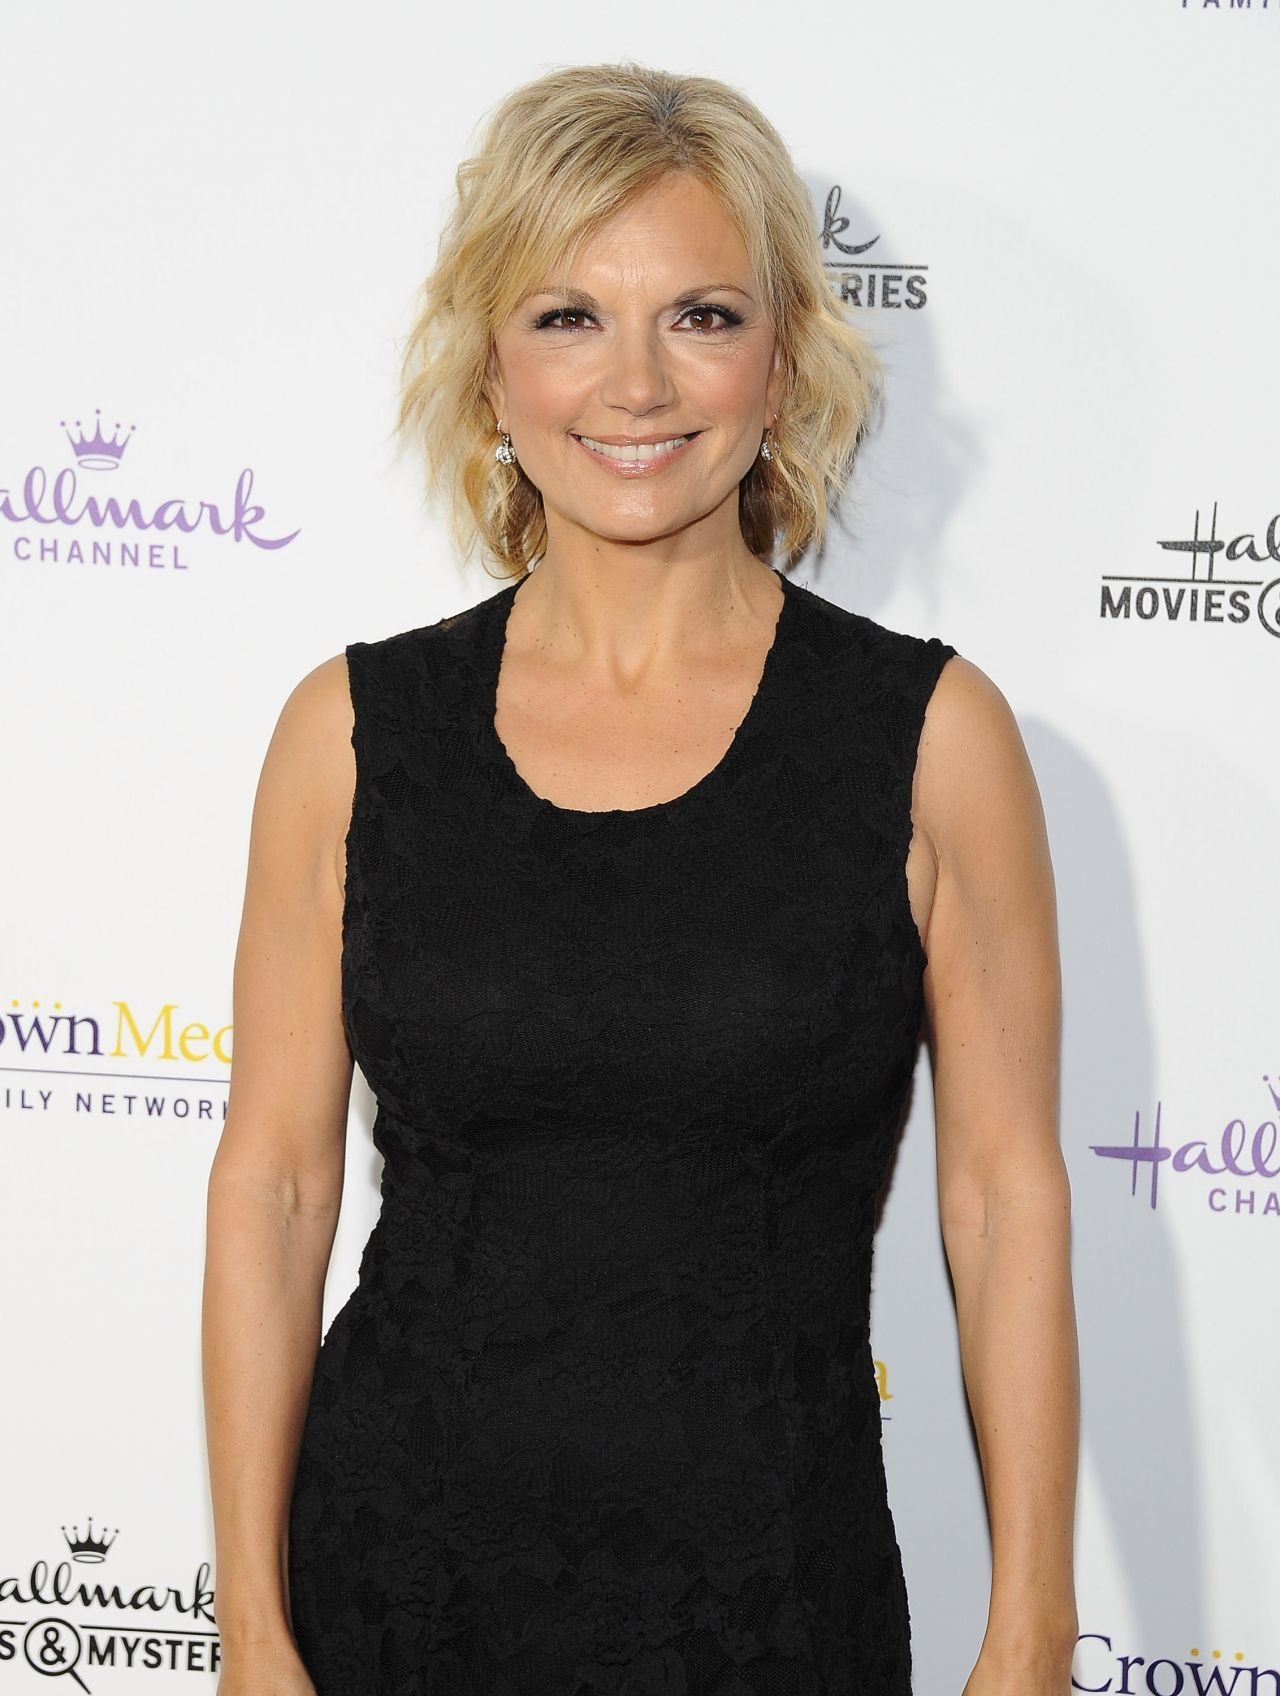 teryl rothery weight lossteryl rothery 2016, teryl rothery young, teryl rothery, teryl rothery imdb, teryl rothery married, teryl rothery weight loss, teryl rothery measurements, teryl rothery twitter, teryl rothery movies and tv shows, teryl rothery death, teryl rothery height, teryl rothery supernatural